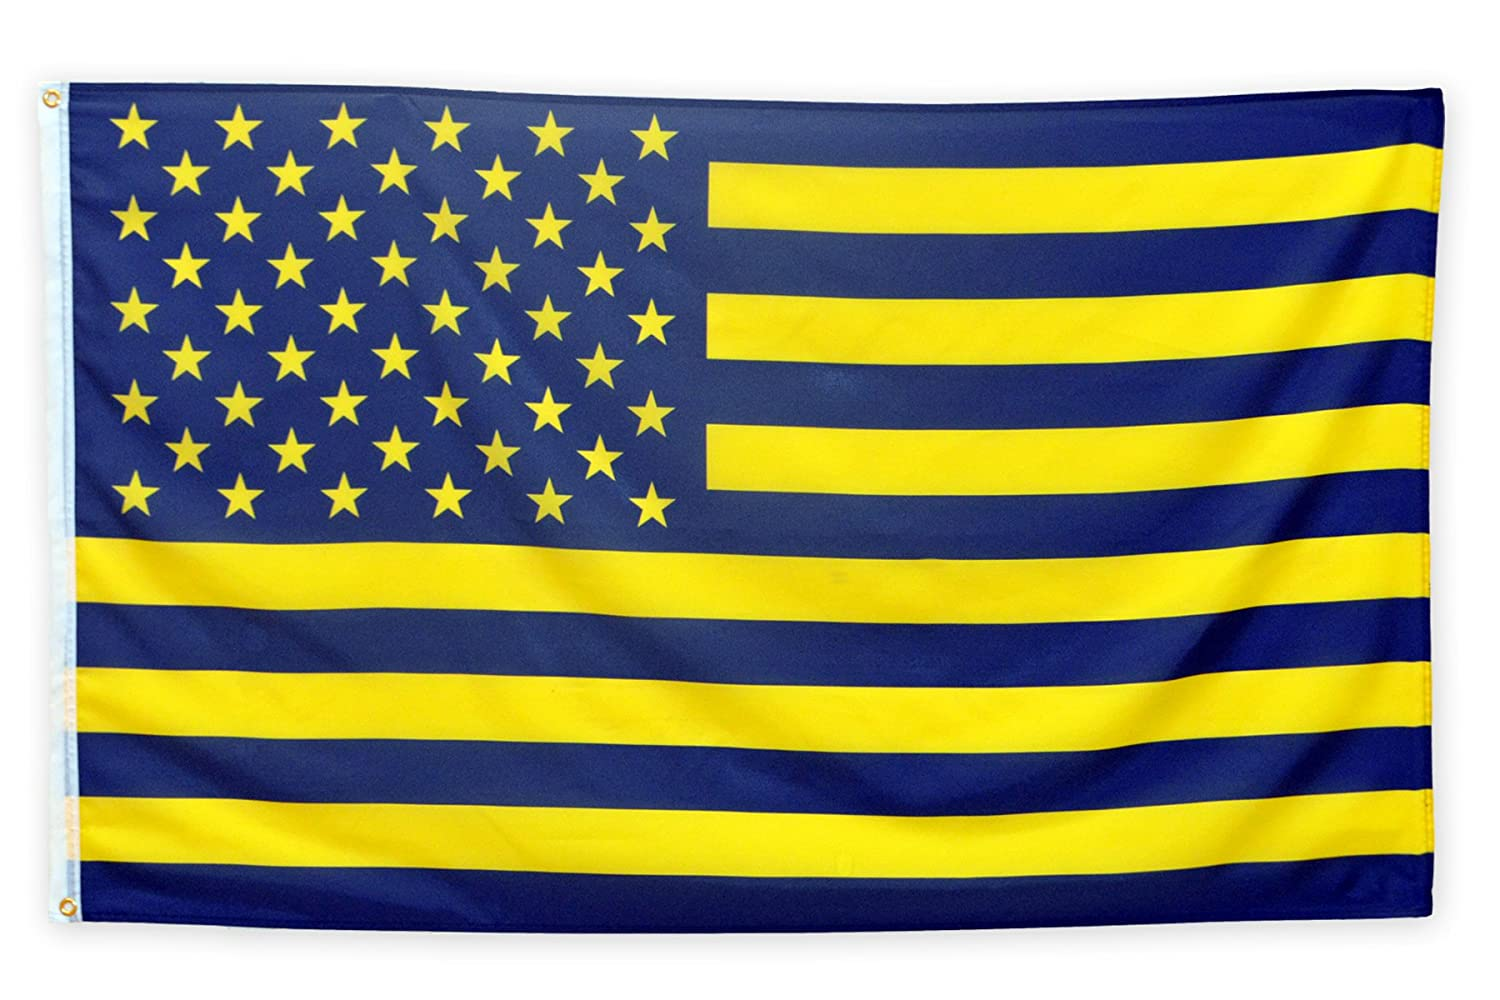 Amazon.com : Pointview Flags Maize and Blue American Flag - 3 by 5 ...